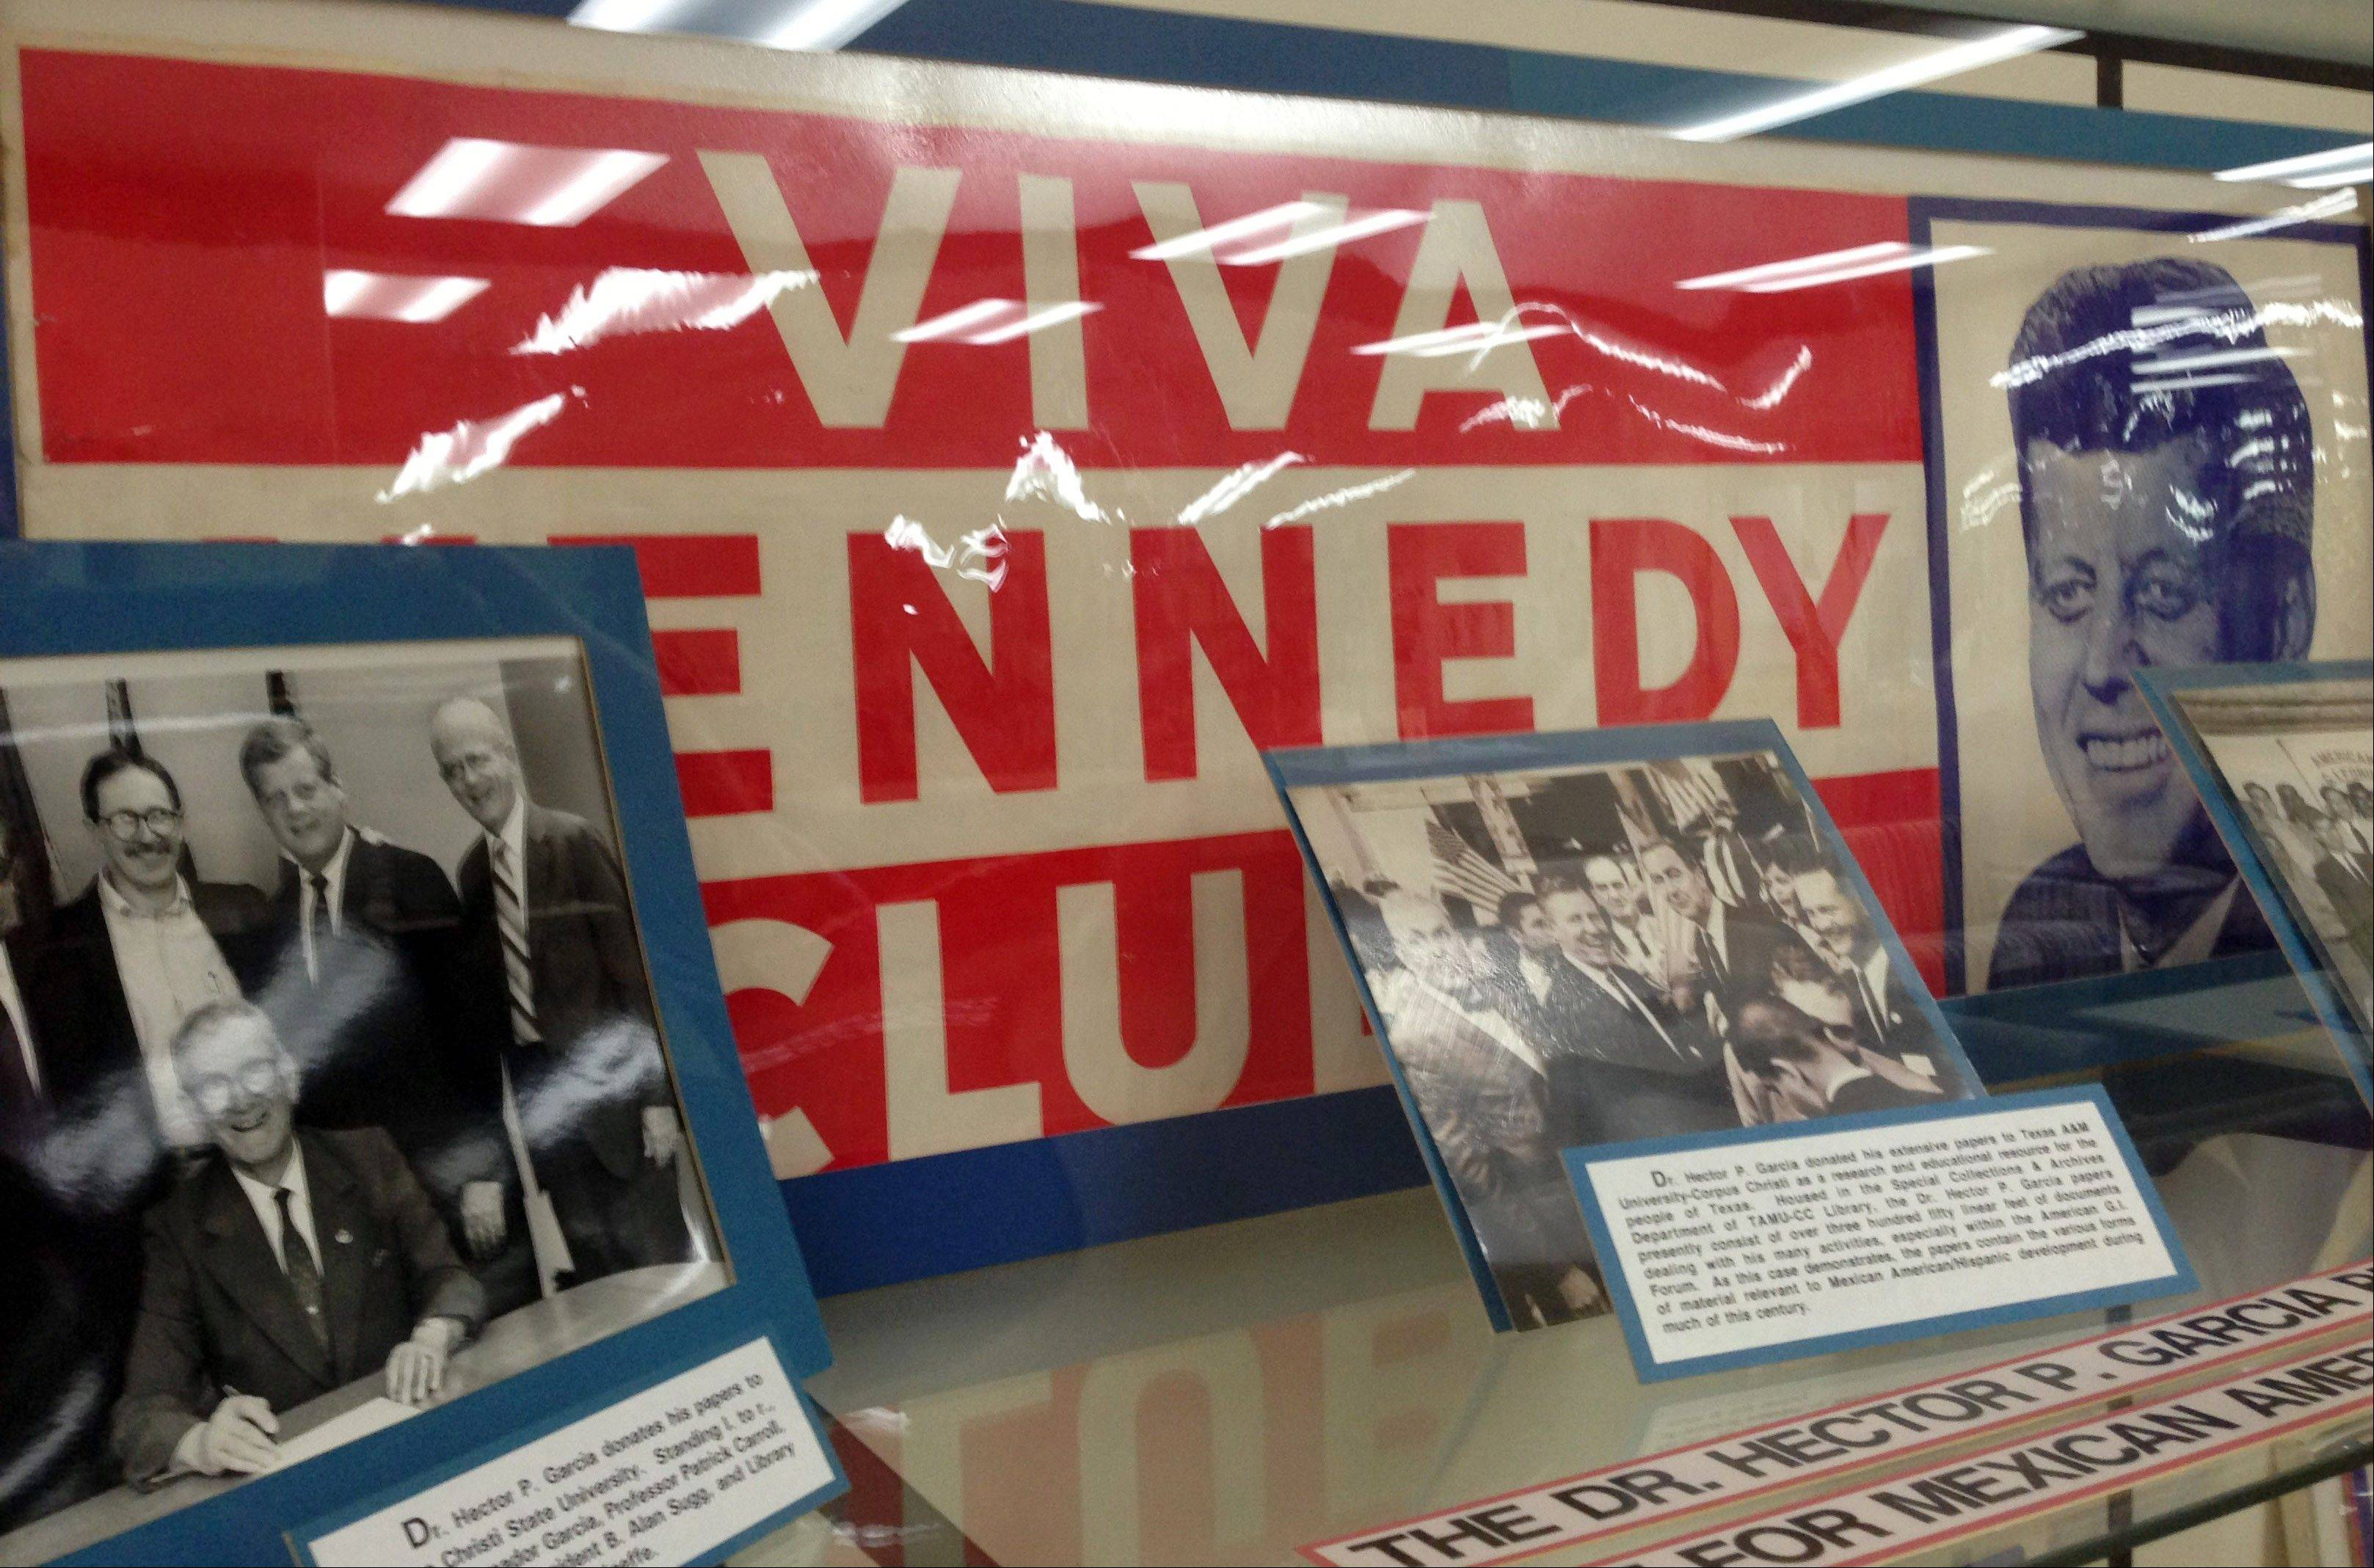 Old Viva Kennedy! campaign buttons of civil rights leader and G.I. Forum founder Dr. Hector P. Garcia, lower left, are on display at the Garcia exhibit at Texas A&M-Corpus Christi.